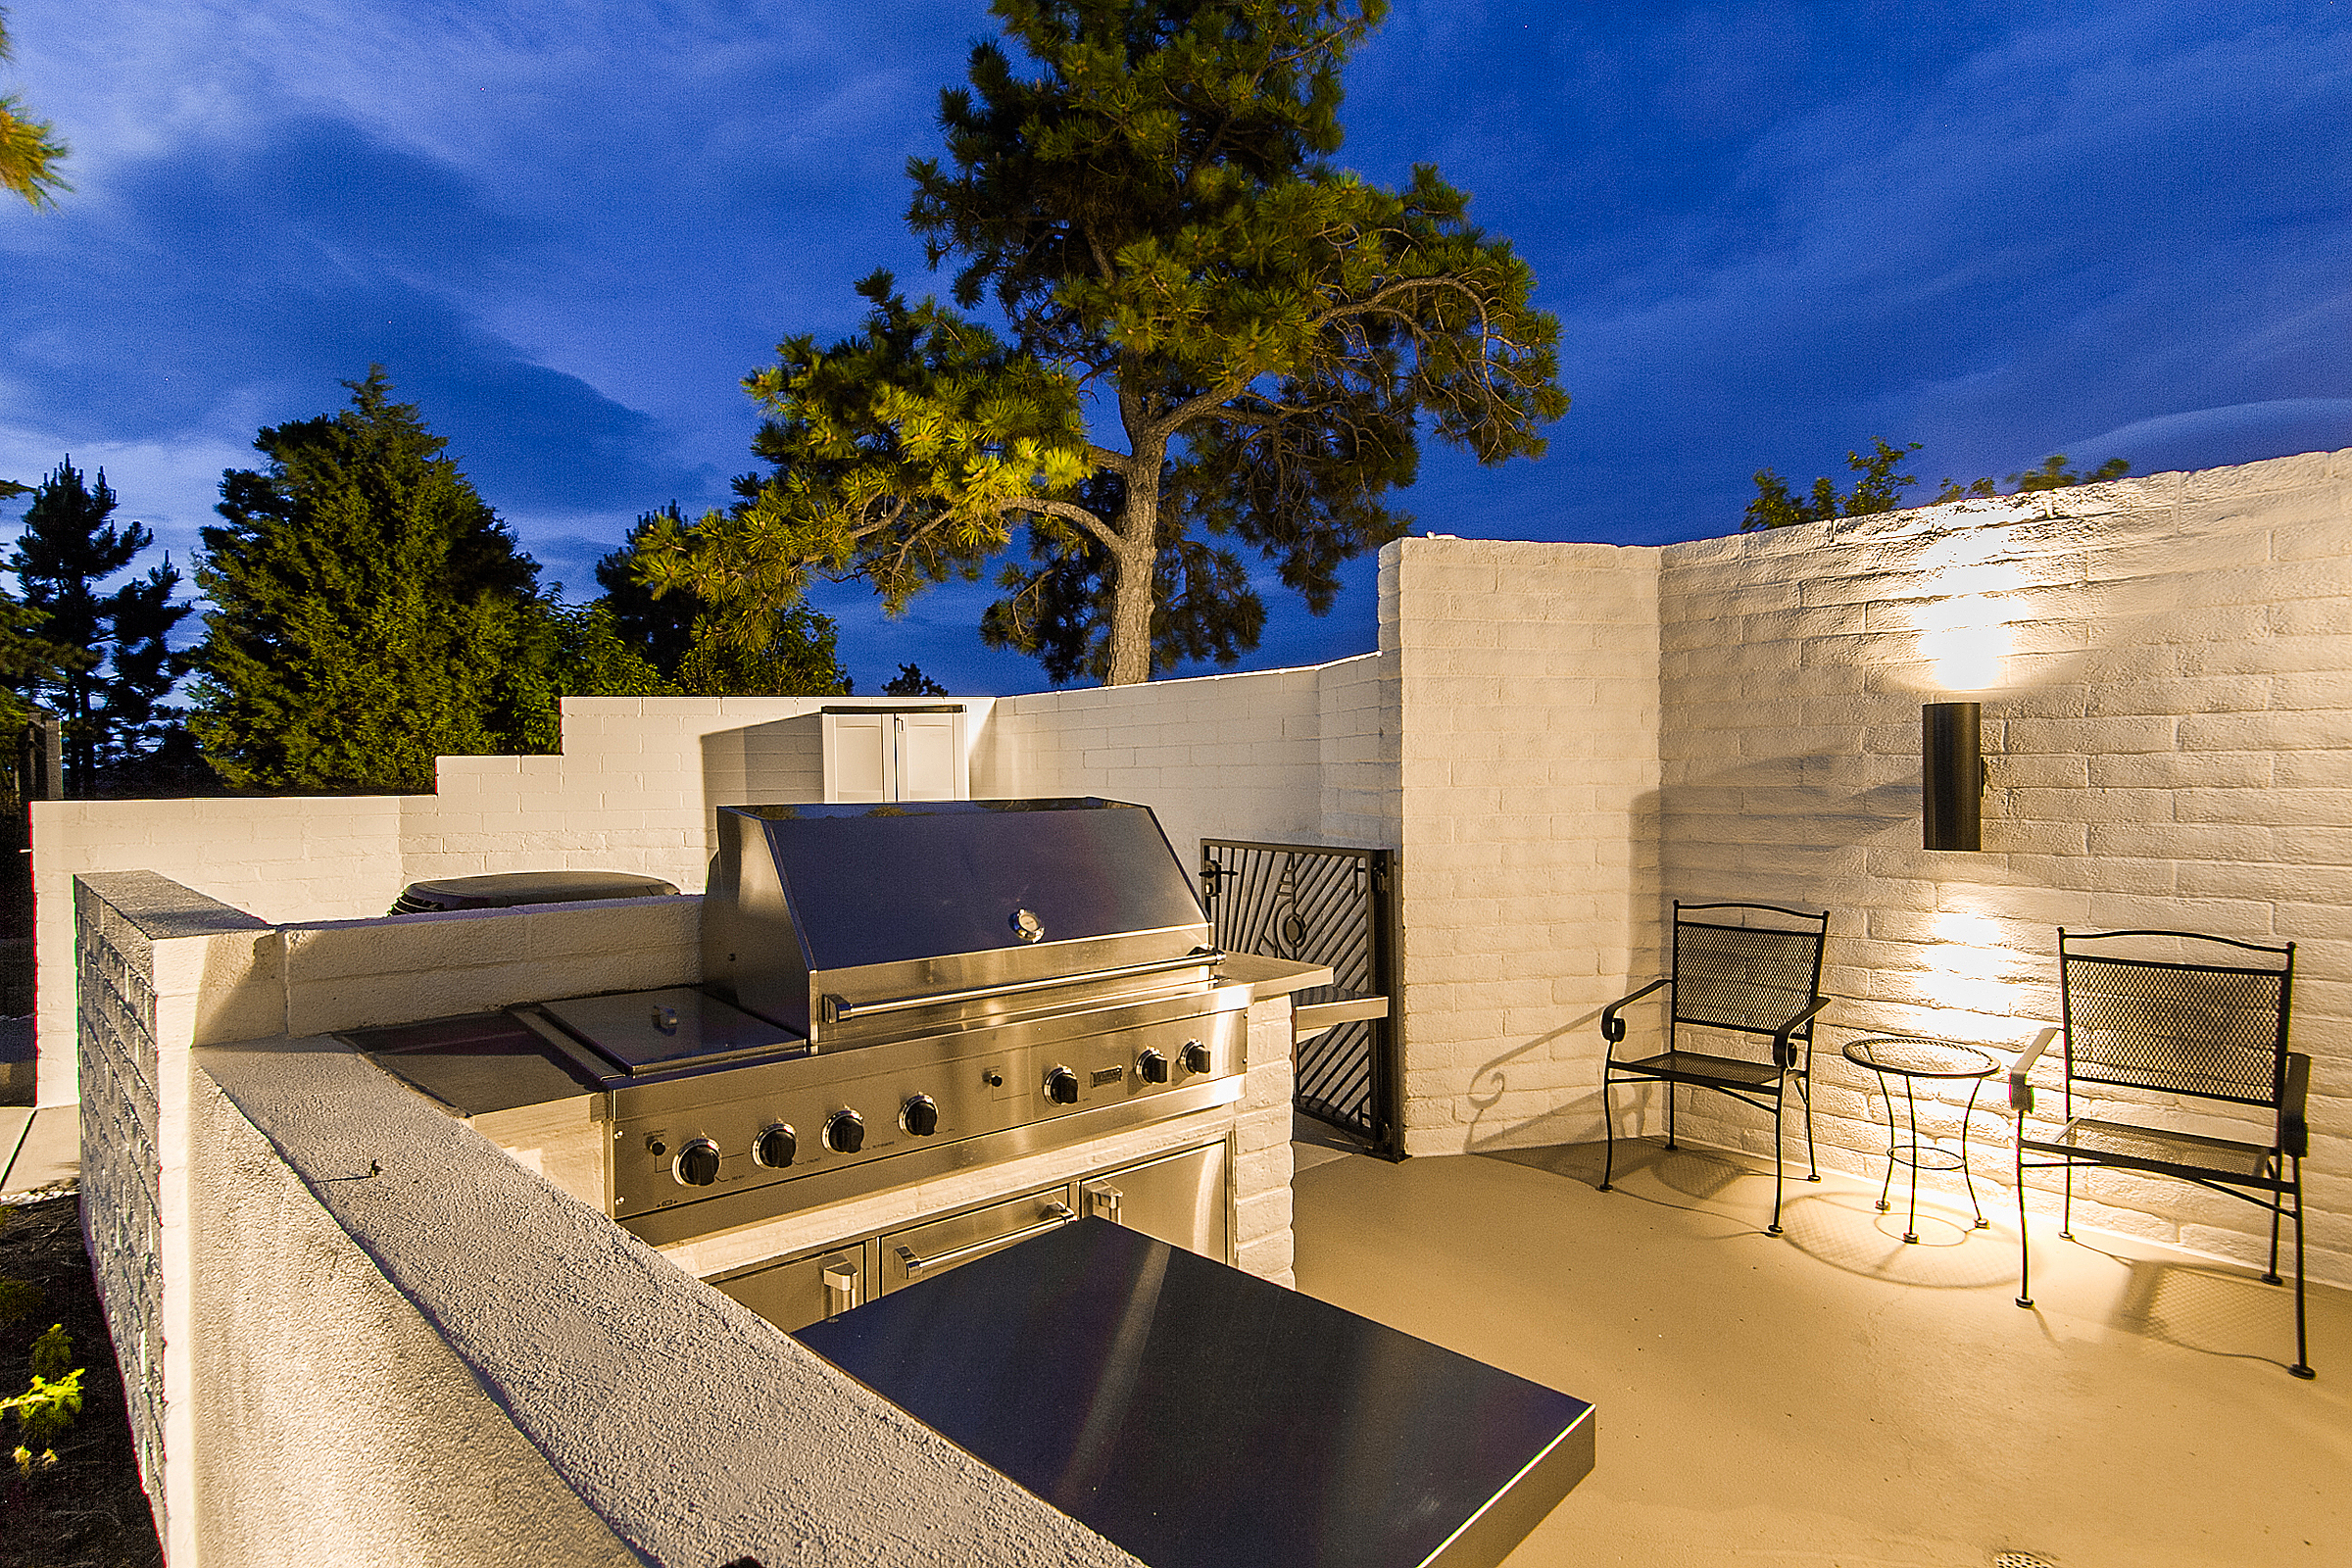 1340121_Built-in-Grill-Patio_high.jpg